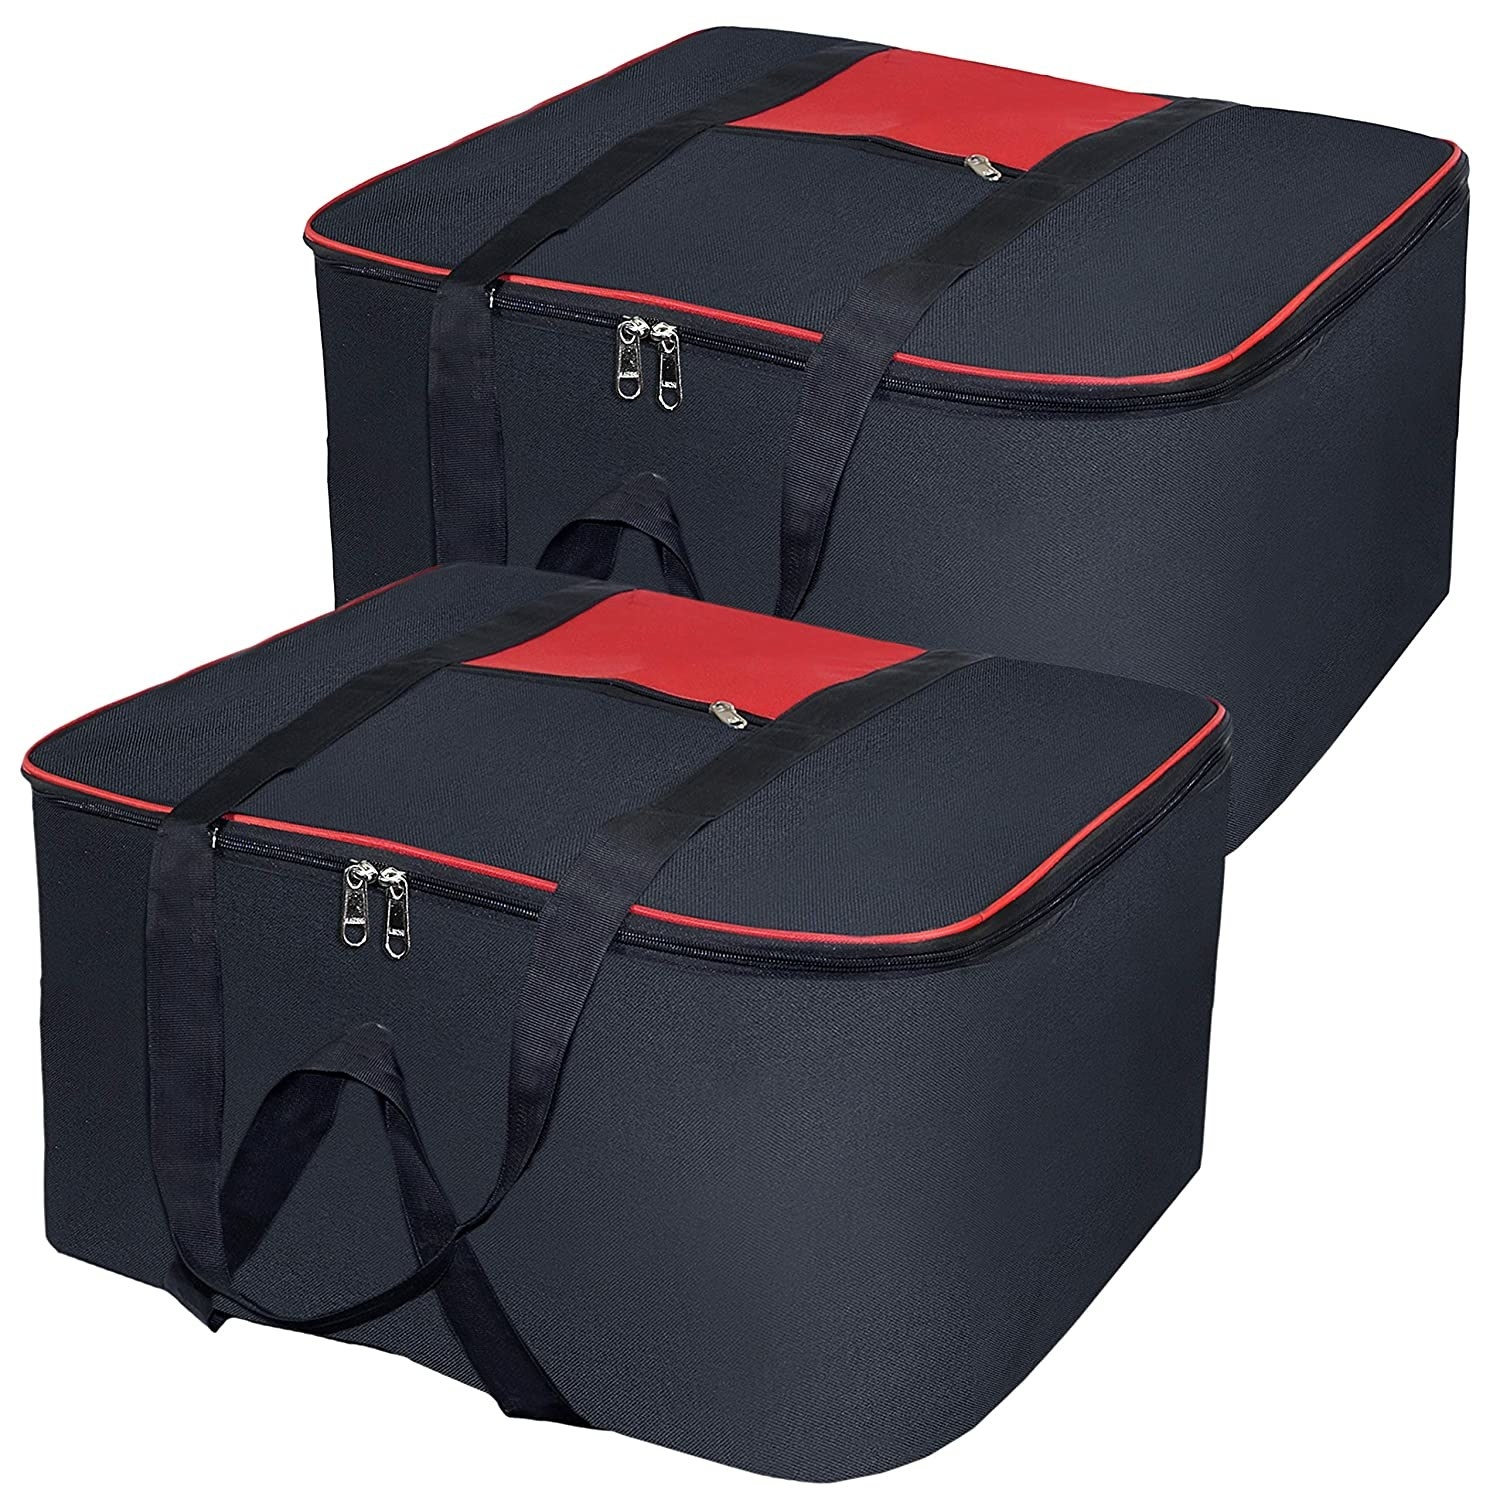 Red and black storage bags.